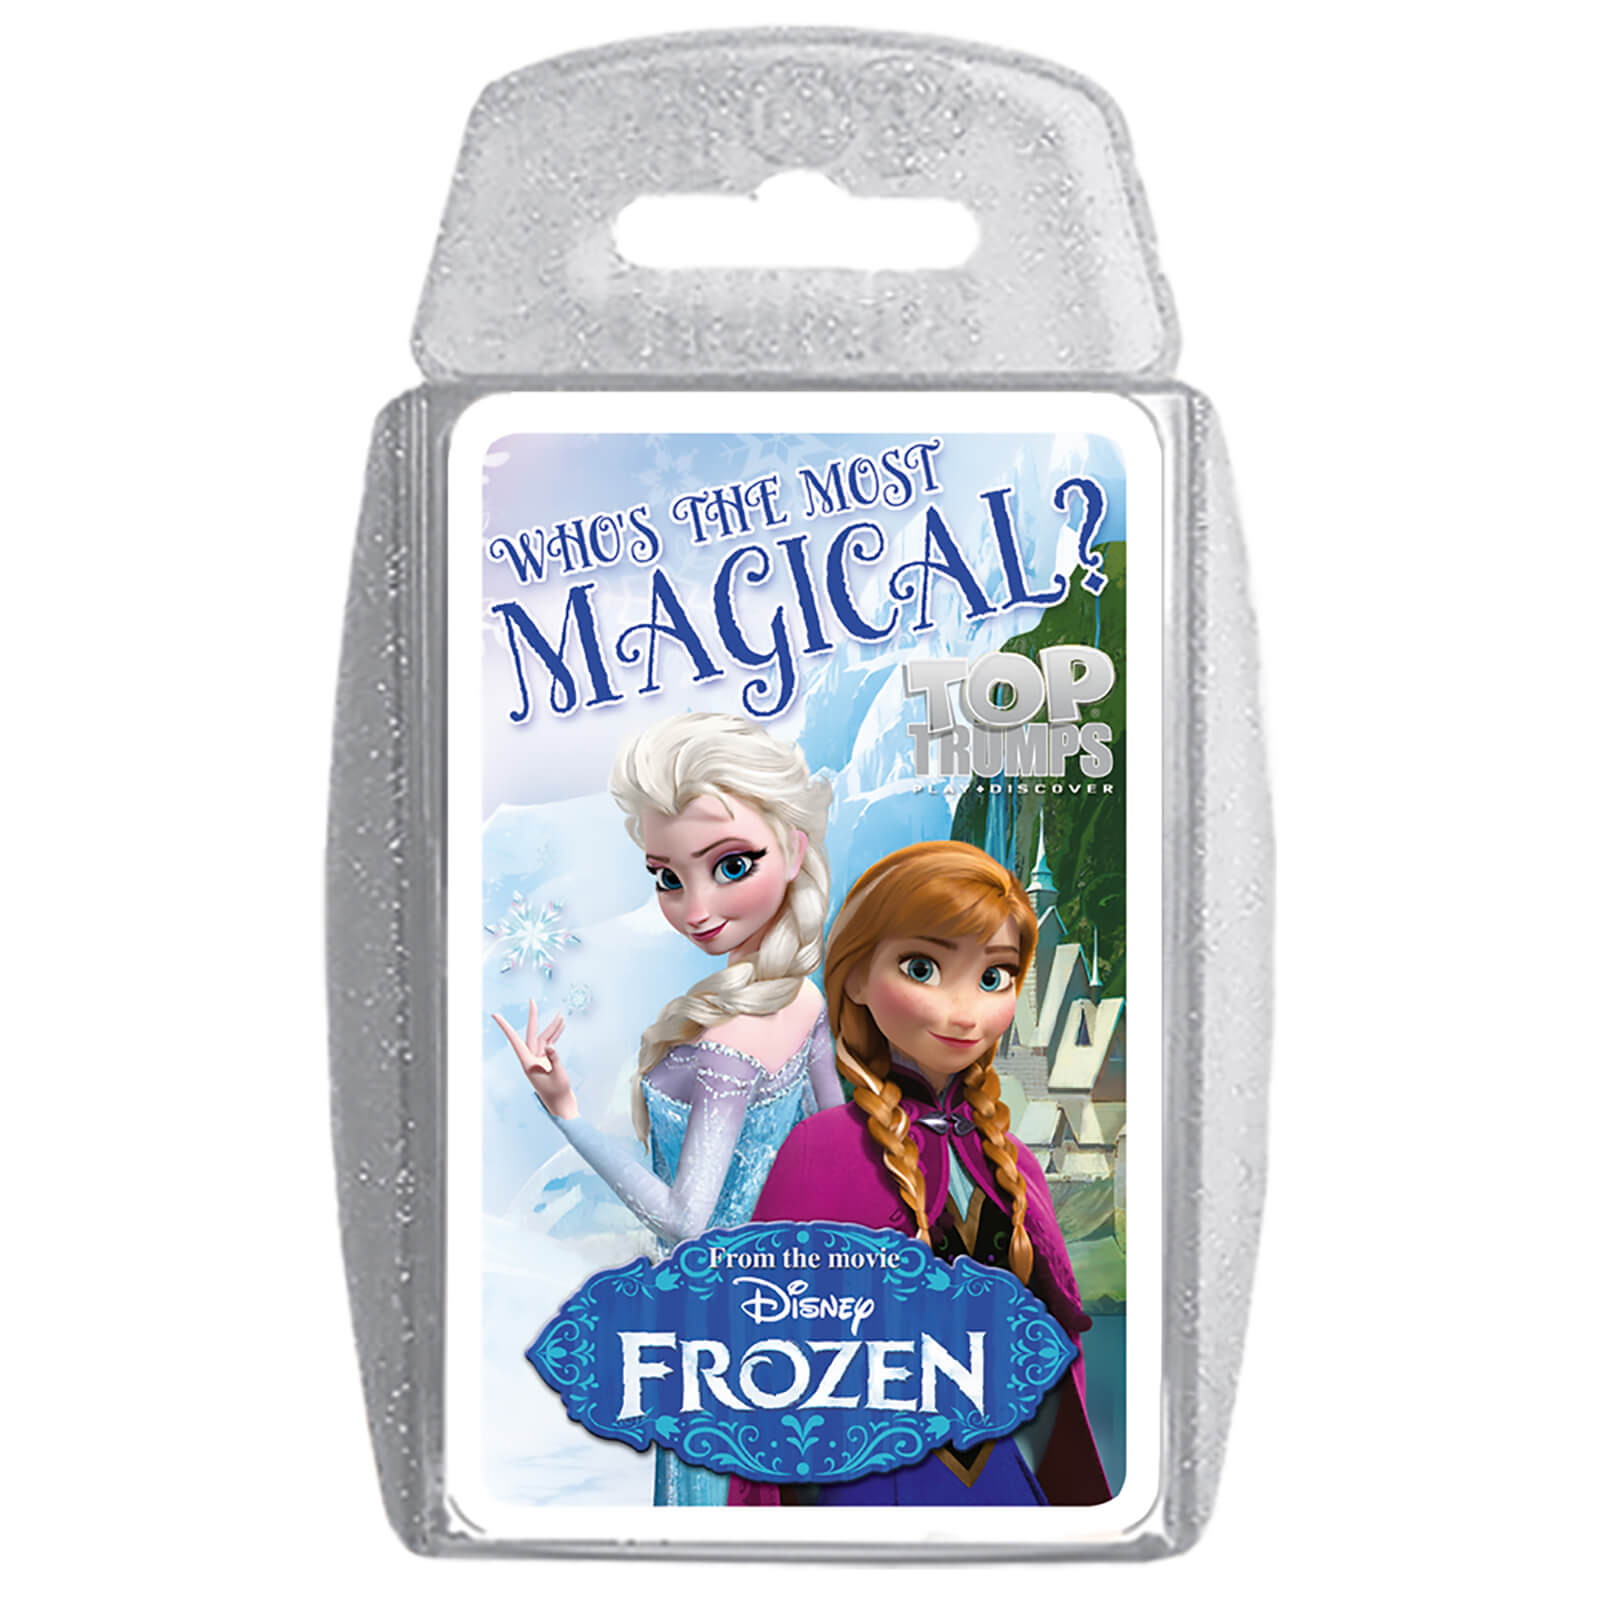 Top Trumps Specials - Frozen